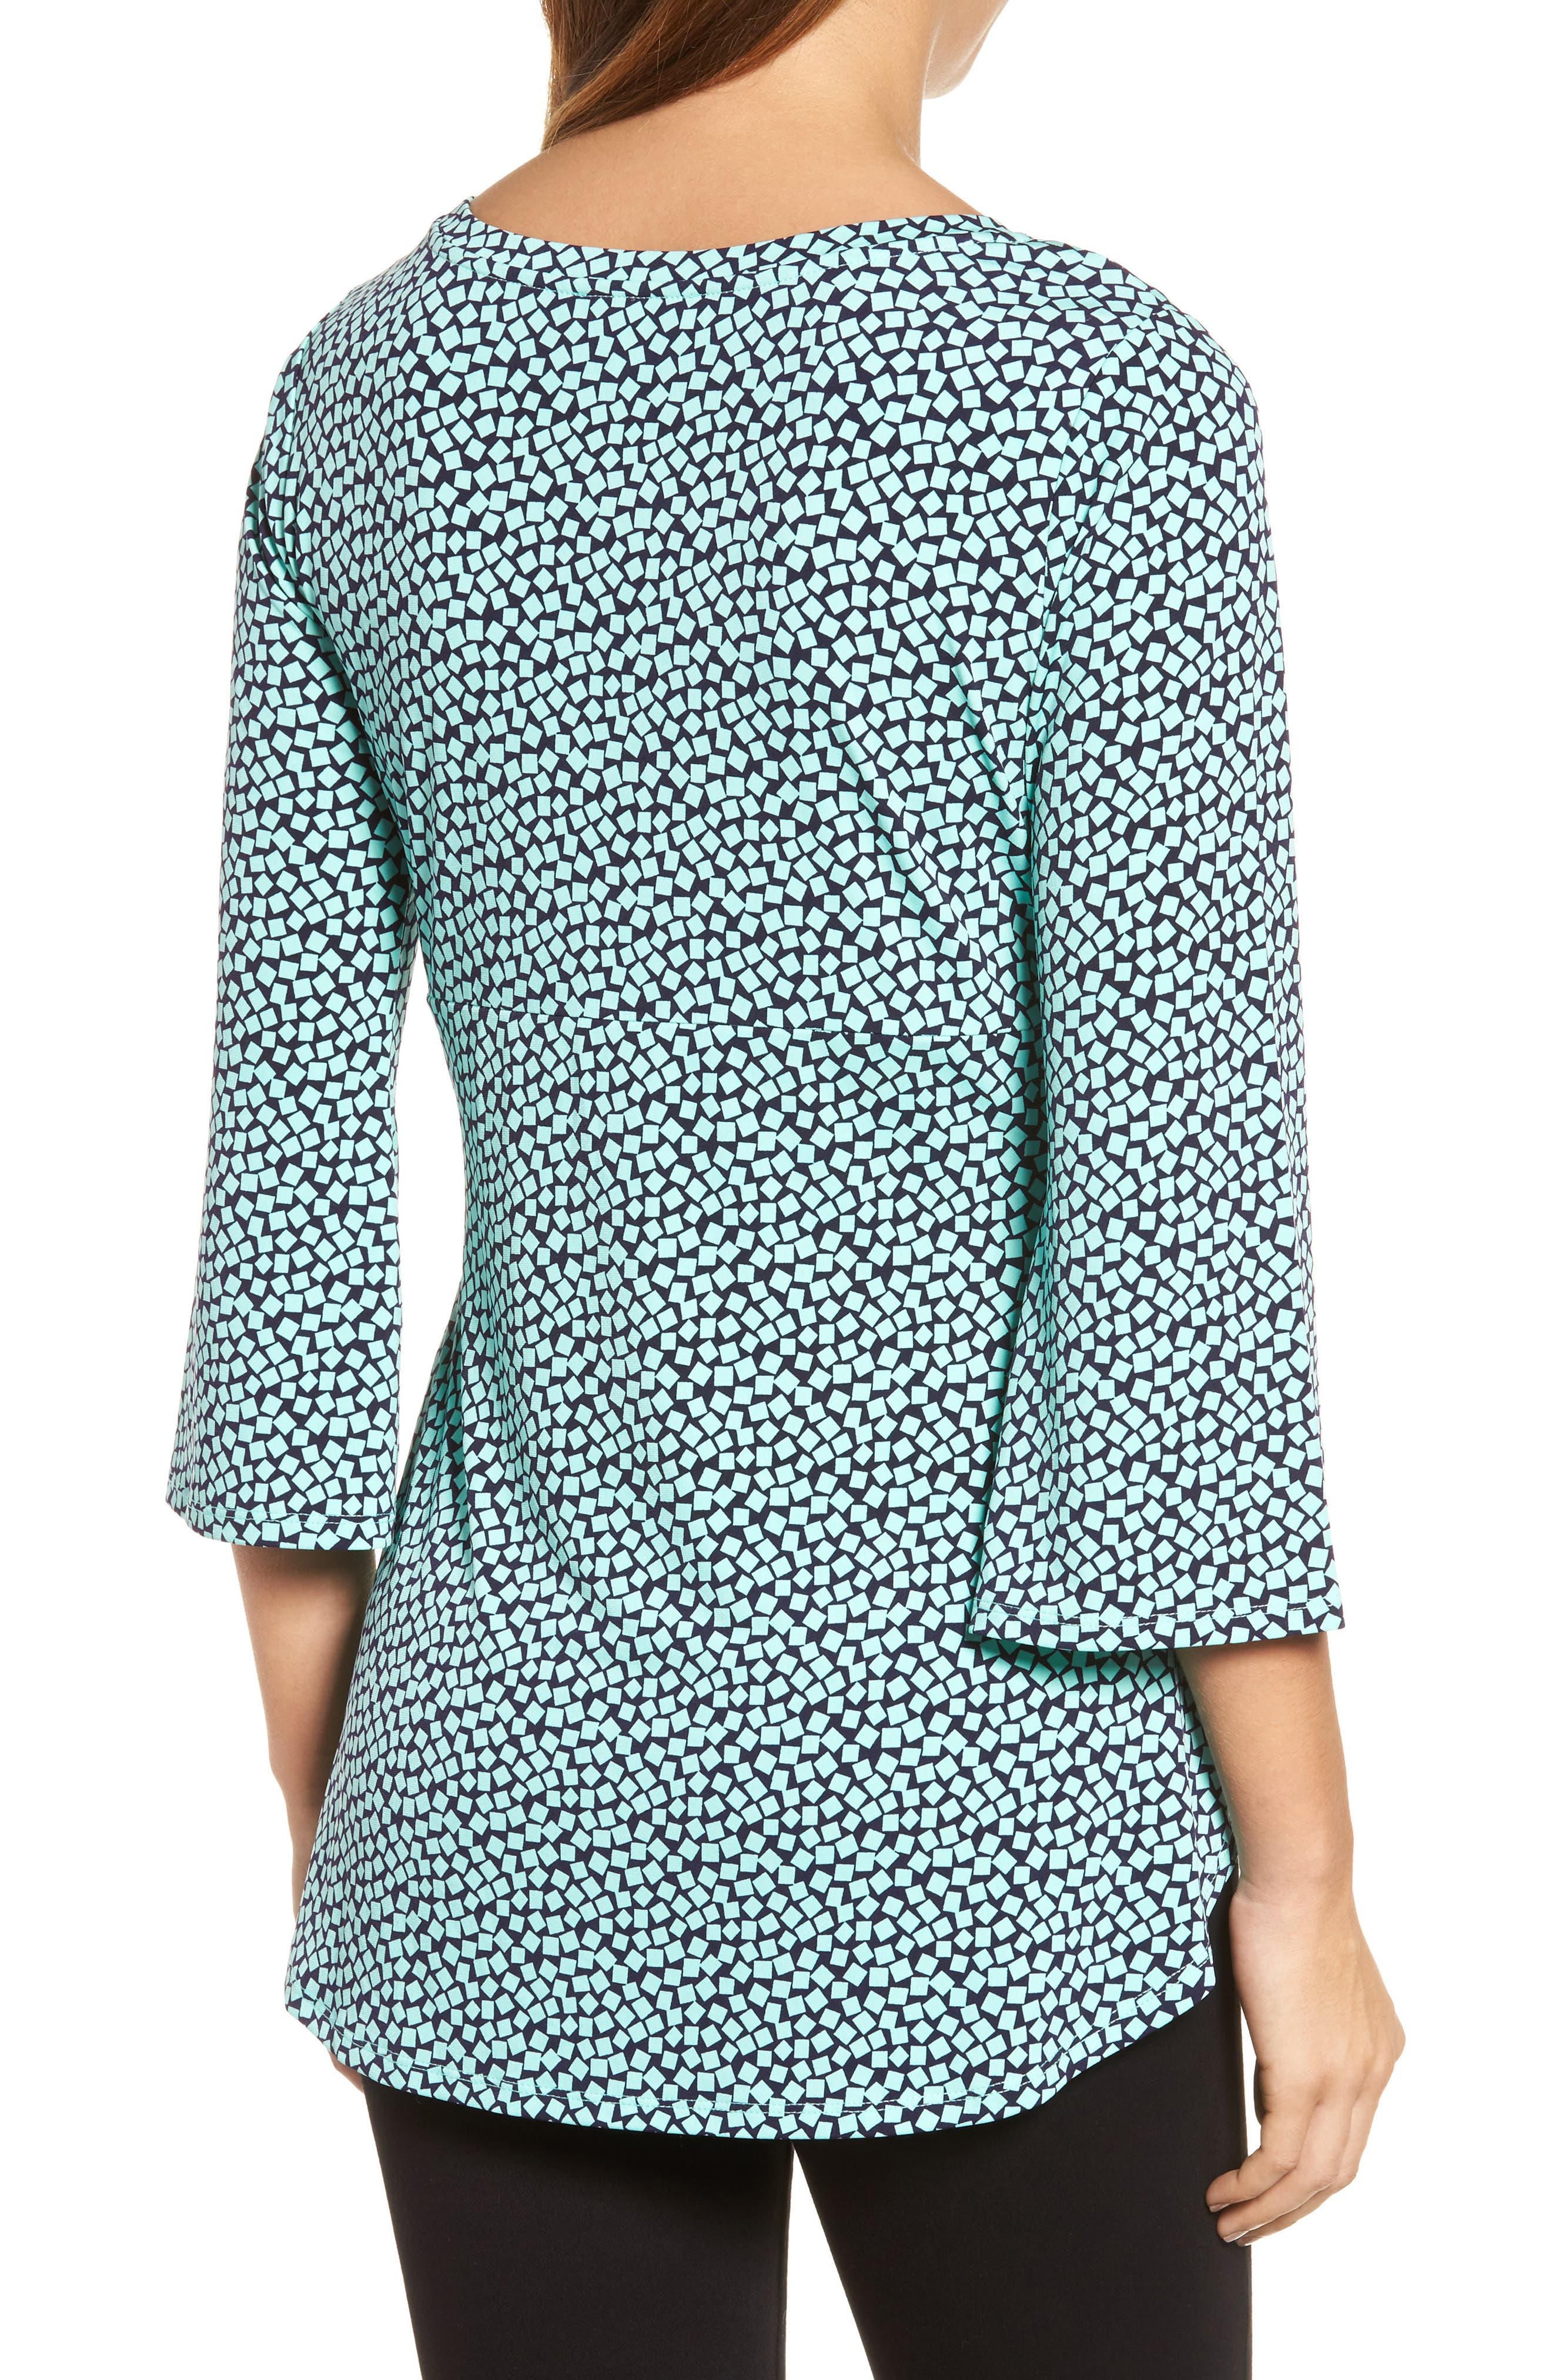 Alternate Image 2  - Chaus Bell Sleeve Cube Print Top